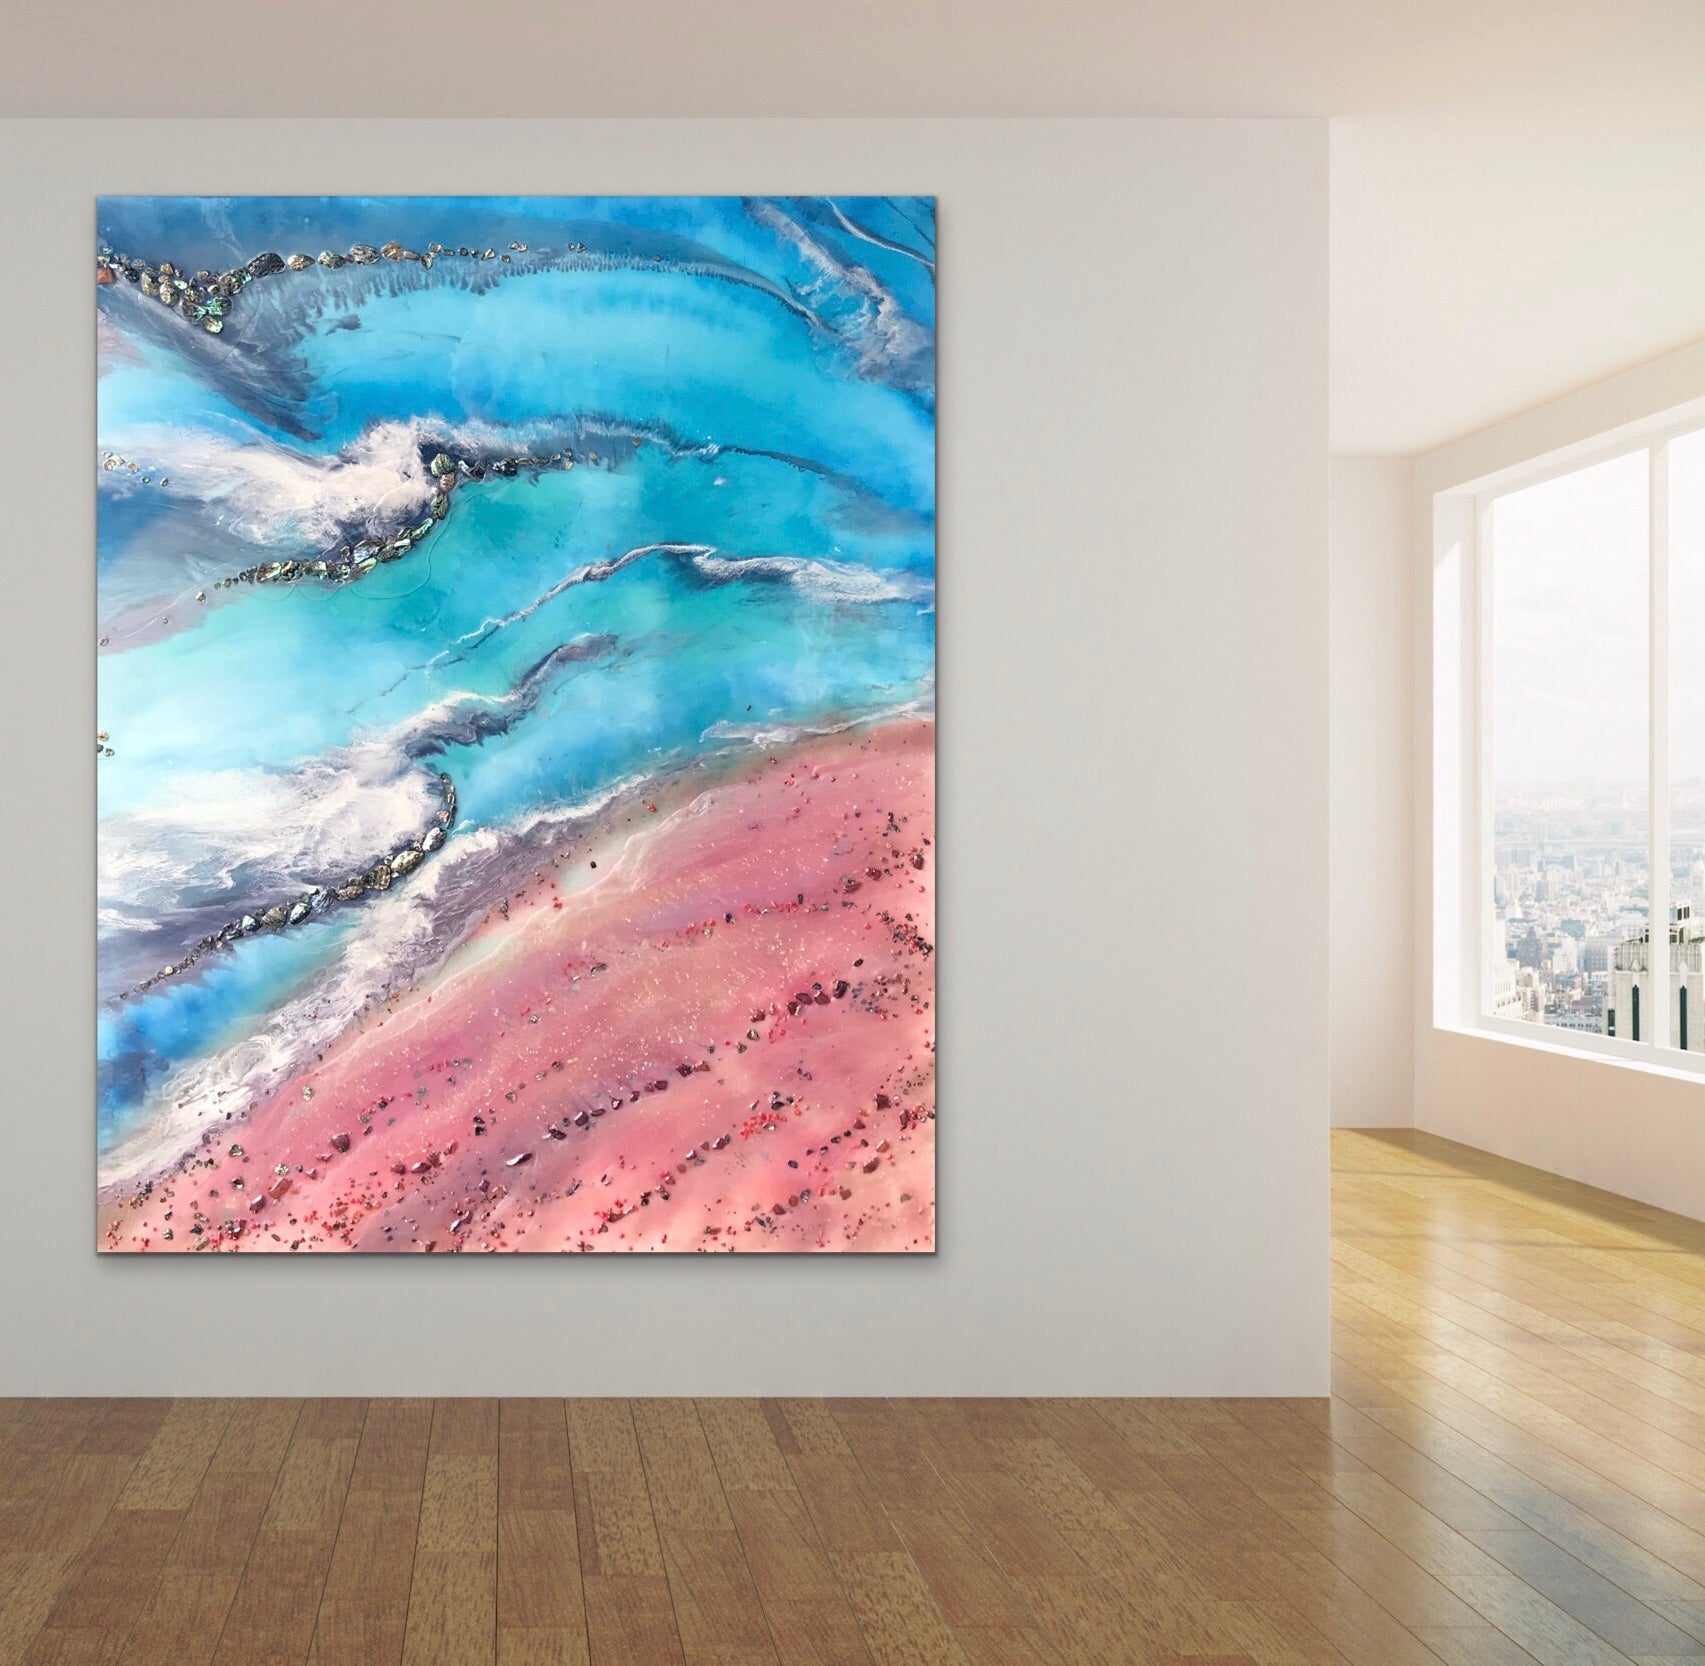 Teal and Pink Ocean Painting. Abstract Seascape Resin Artwork 7 Azure Coastline. Ocean. Original with Abalone Shells Coral 120x150cm.